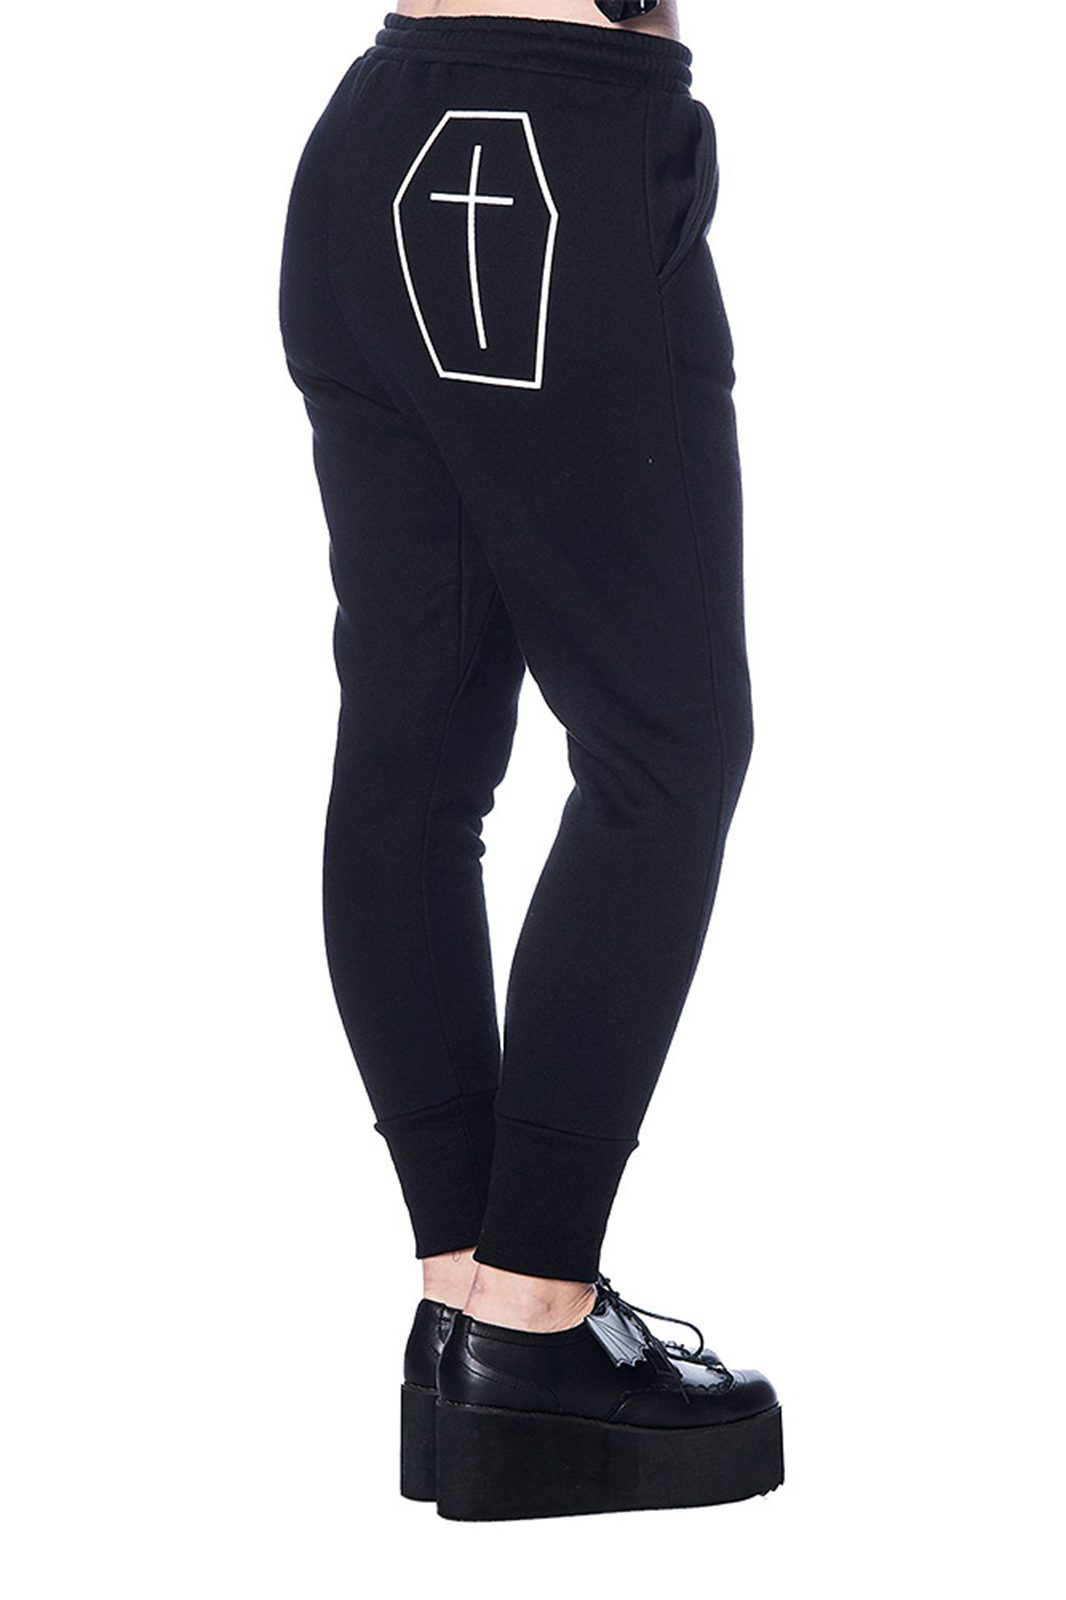 Coffin Sweatpants Black